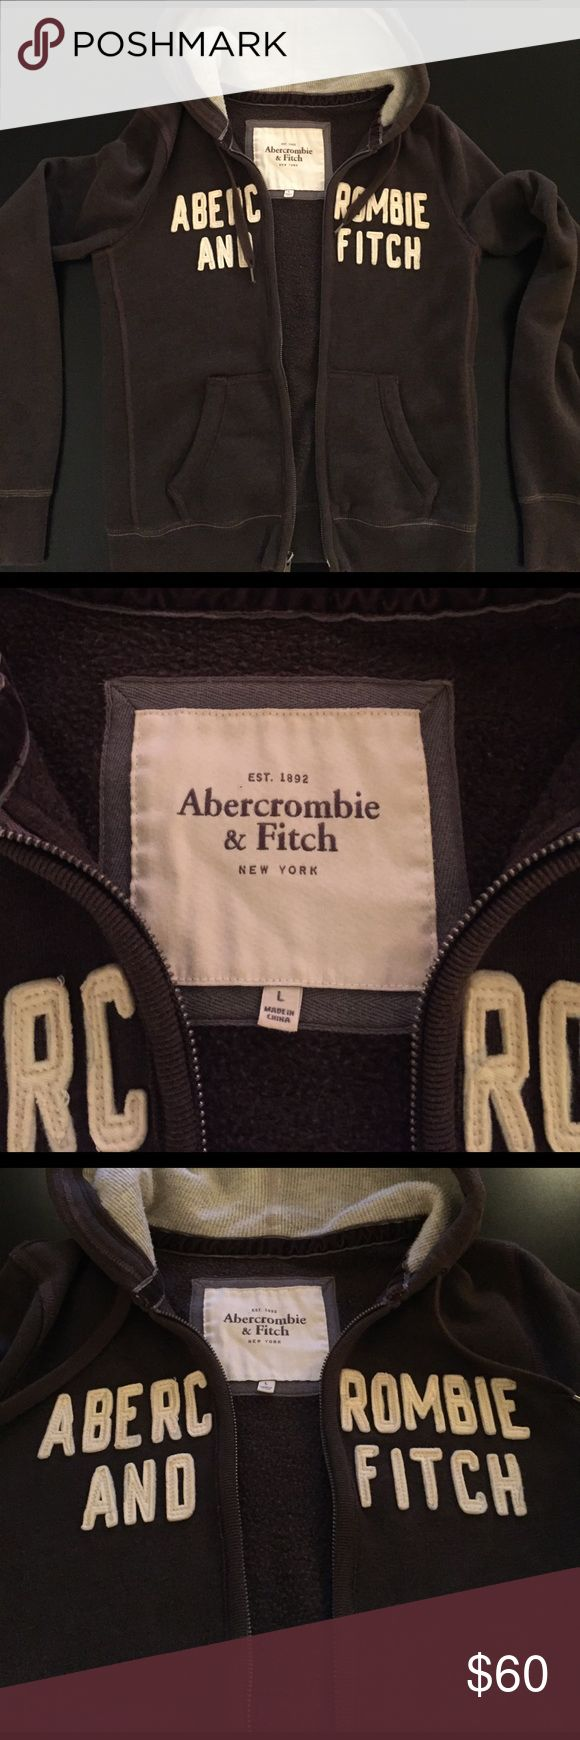 Original🌺Abercrombie&Fitch Brown Zip Up Hoodie!! Original🌺Abercrombie&Fitch Brown Zip Up Hoodie!! Worn a couple times but in great condition, the only thing is the zipper doesn't work. Size Large and fits true to size. This is from when the quality of the brand was FANTASTIC meaning this hoodie is extremely comfortable, heavy, and cozy!! I absolutely love this piece, goes with anything! Abercrombie & Fitch Tops Sweatshirts & Hoodies